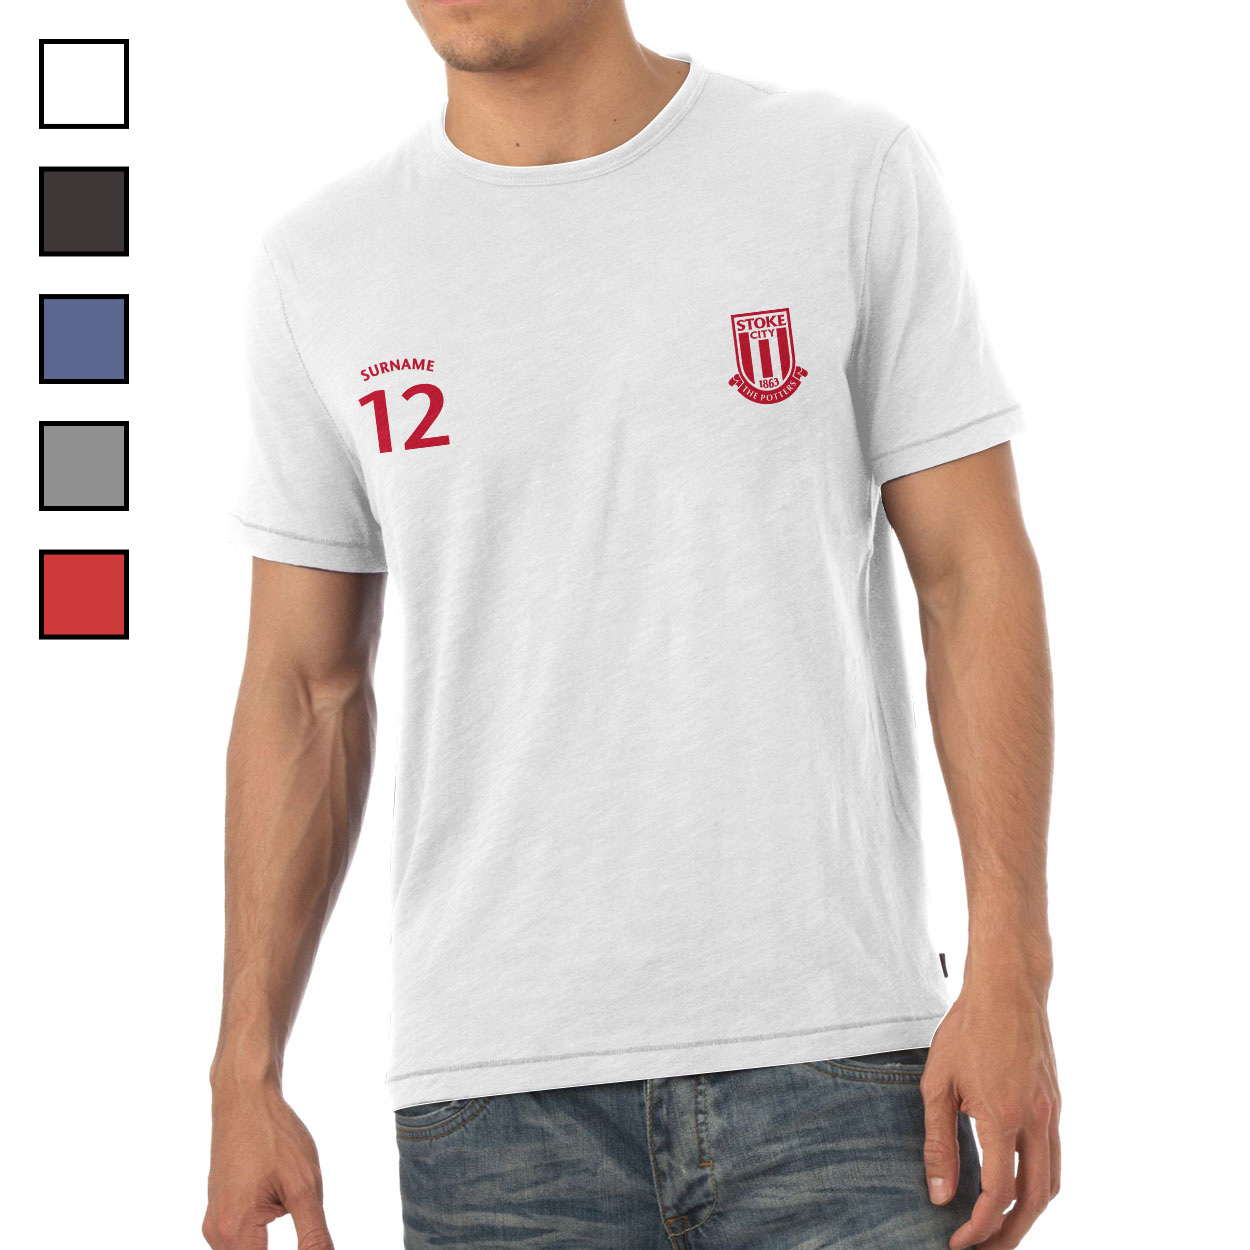 Stoke City FC Mens Sports T-Shirt